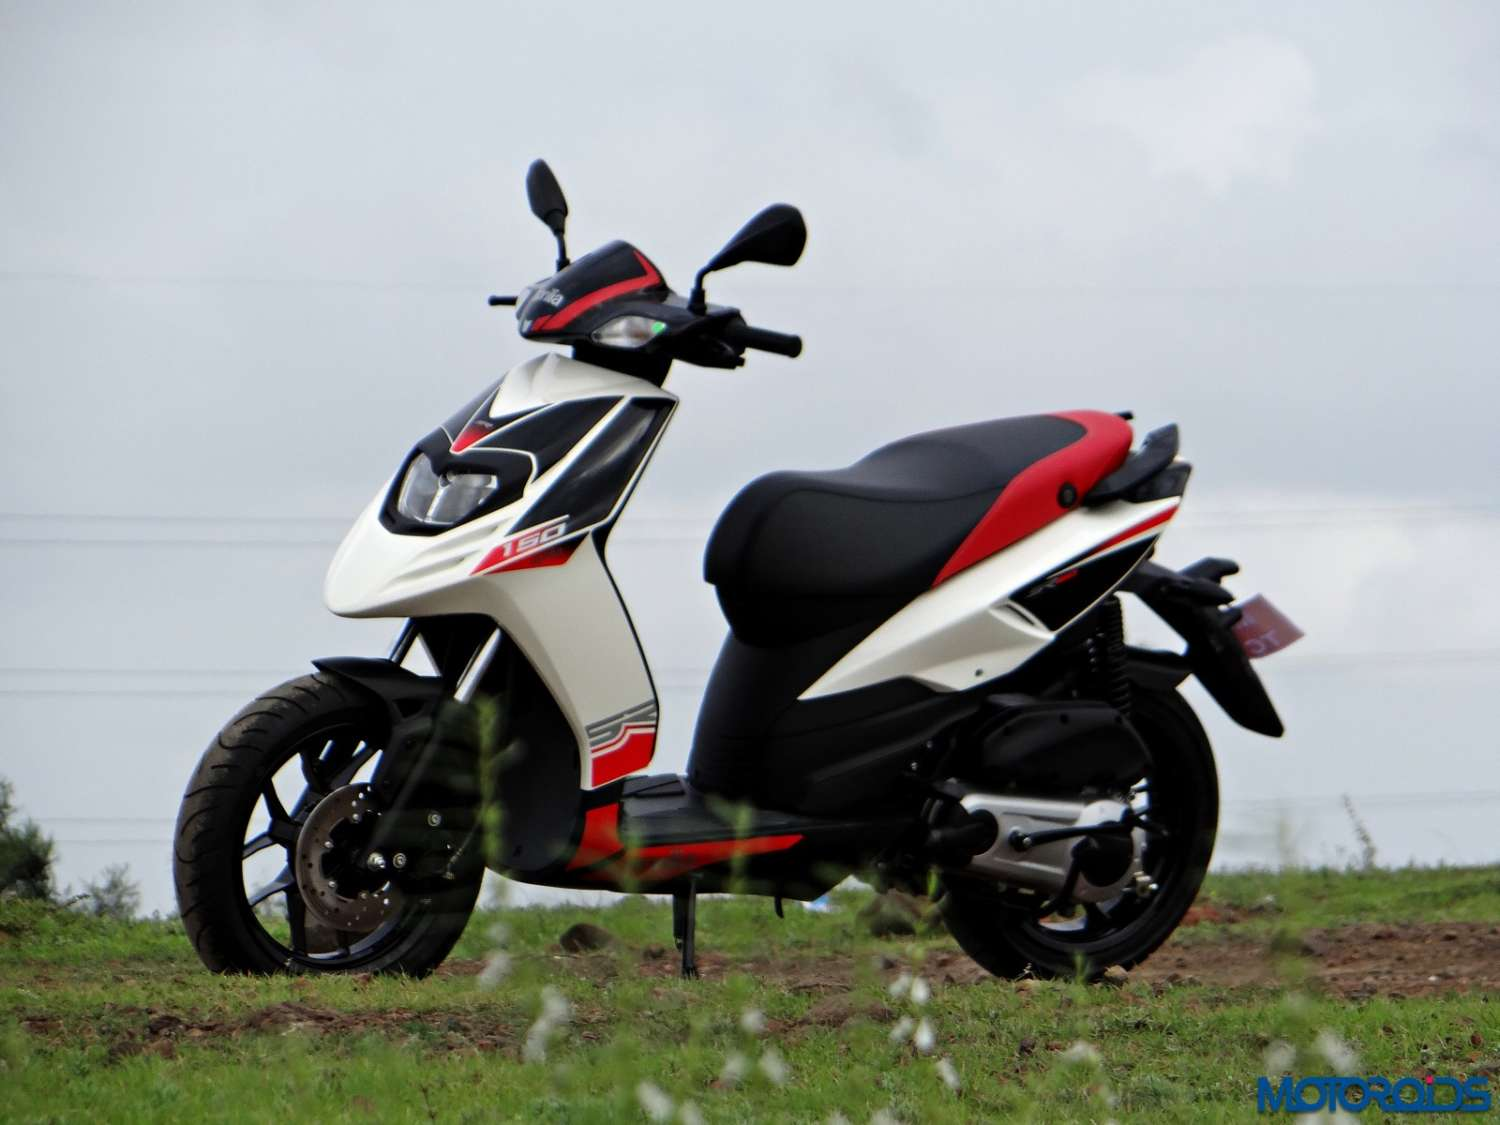 Aprilia SR 150 Review - Still Shots (23)